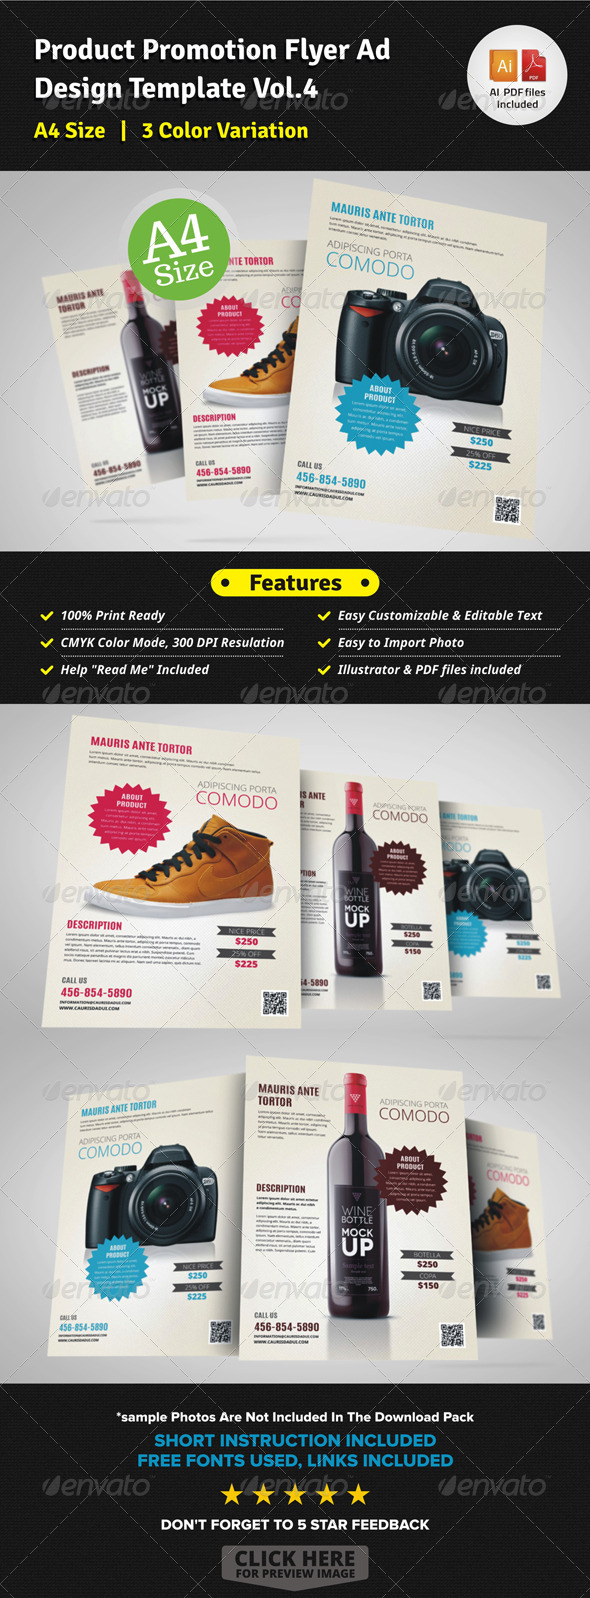 Product Promotion Flyer Ad v4 - Corporate Flyers